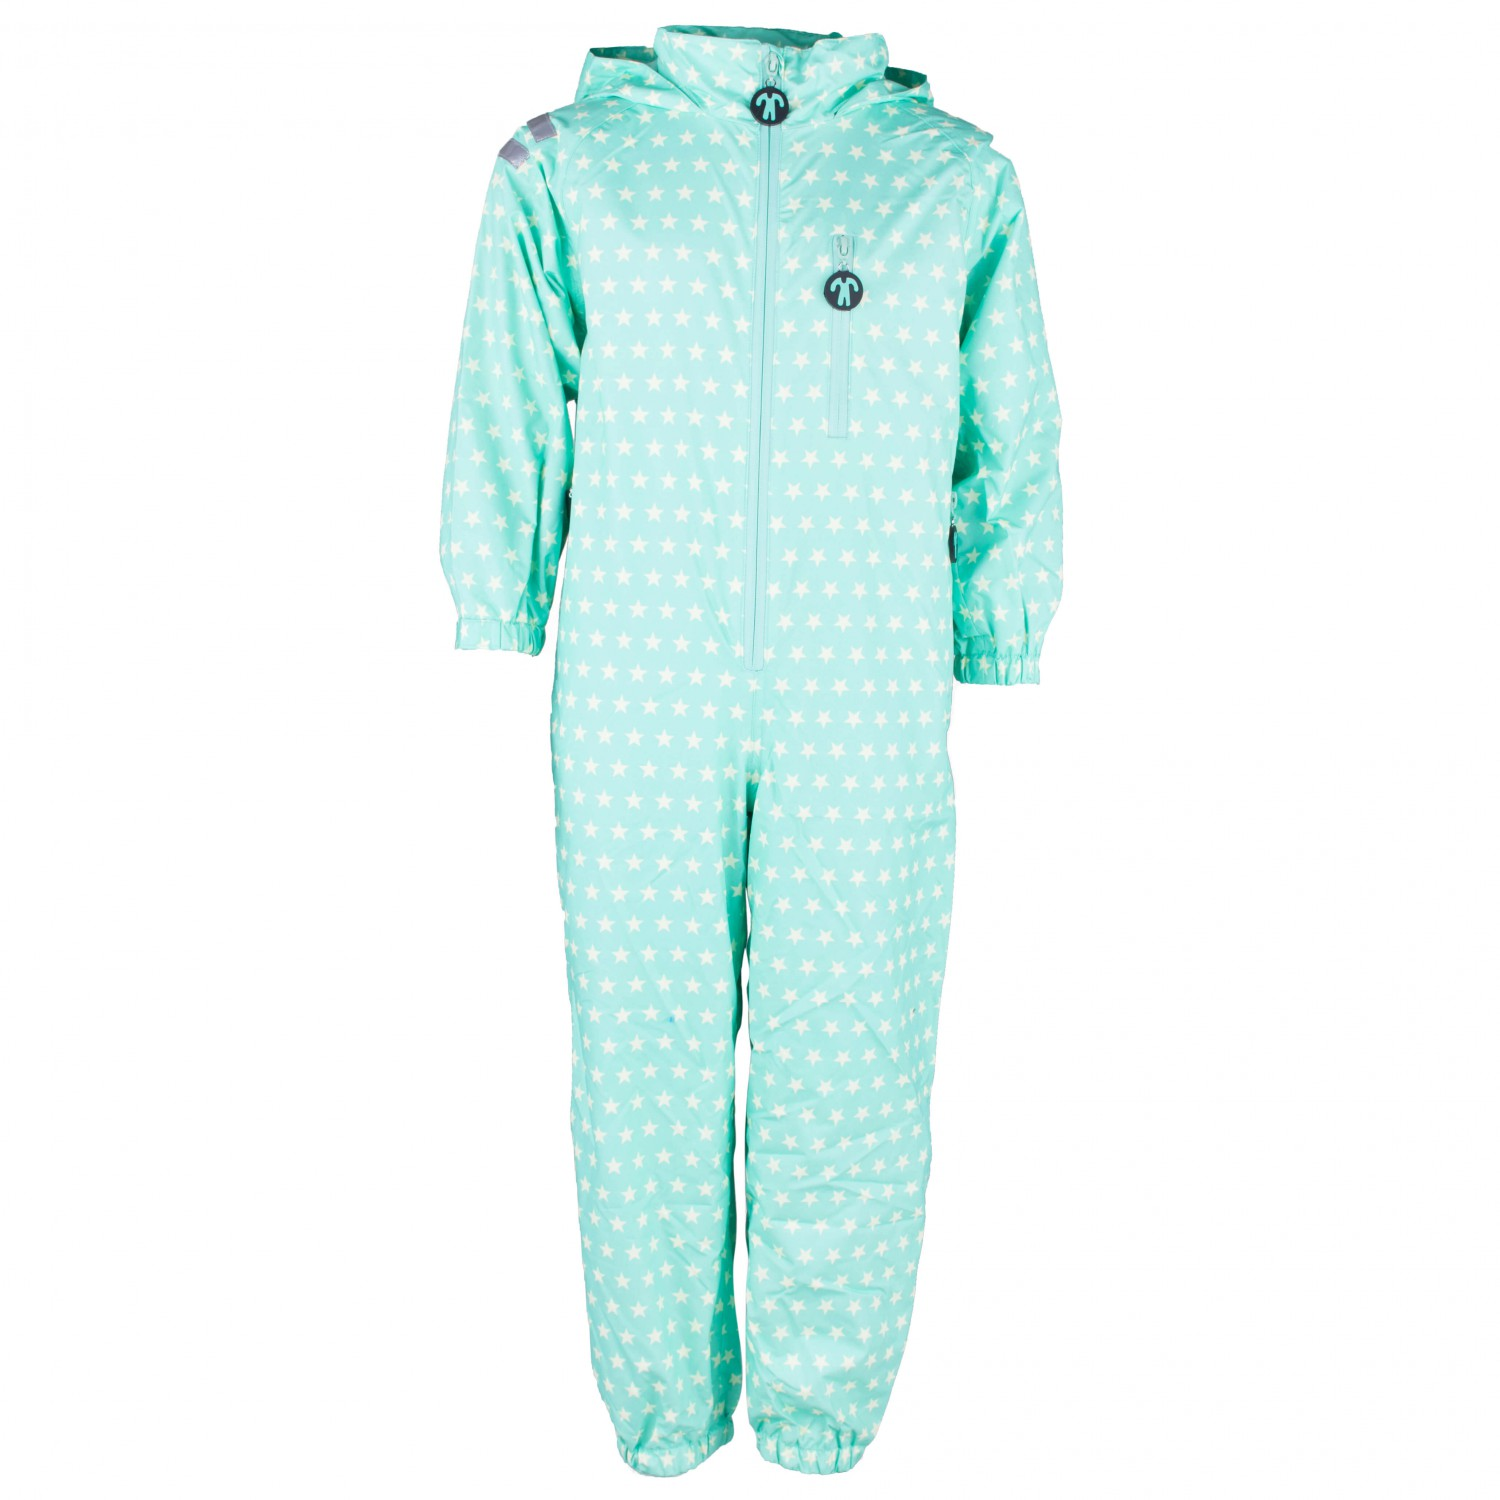 9a45ff8017 Ducksday Rain'n'Snowsuit - Overall Kinder | Review & Test ...